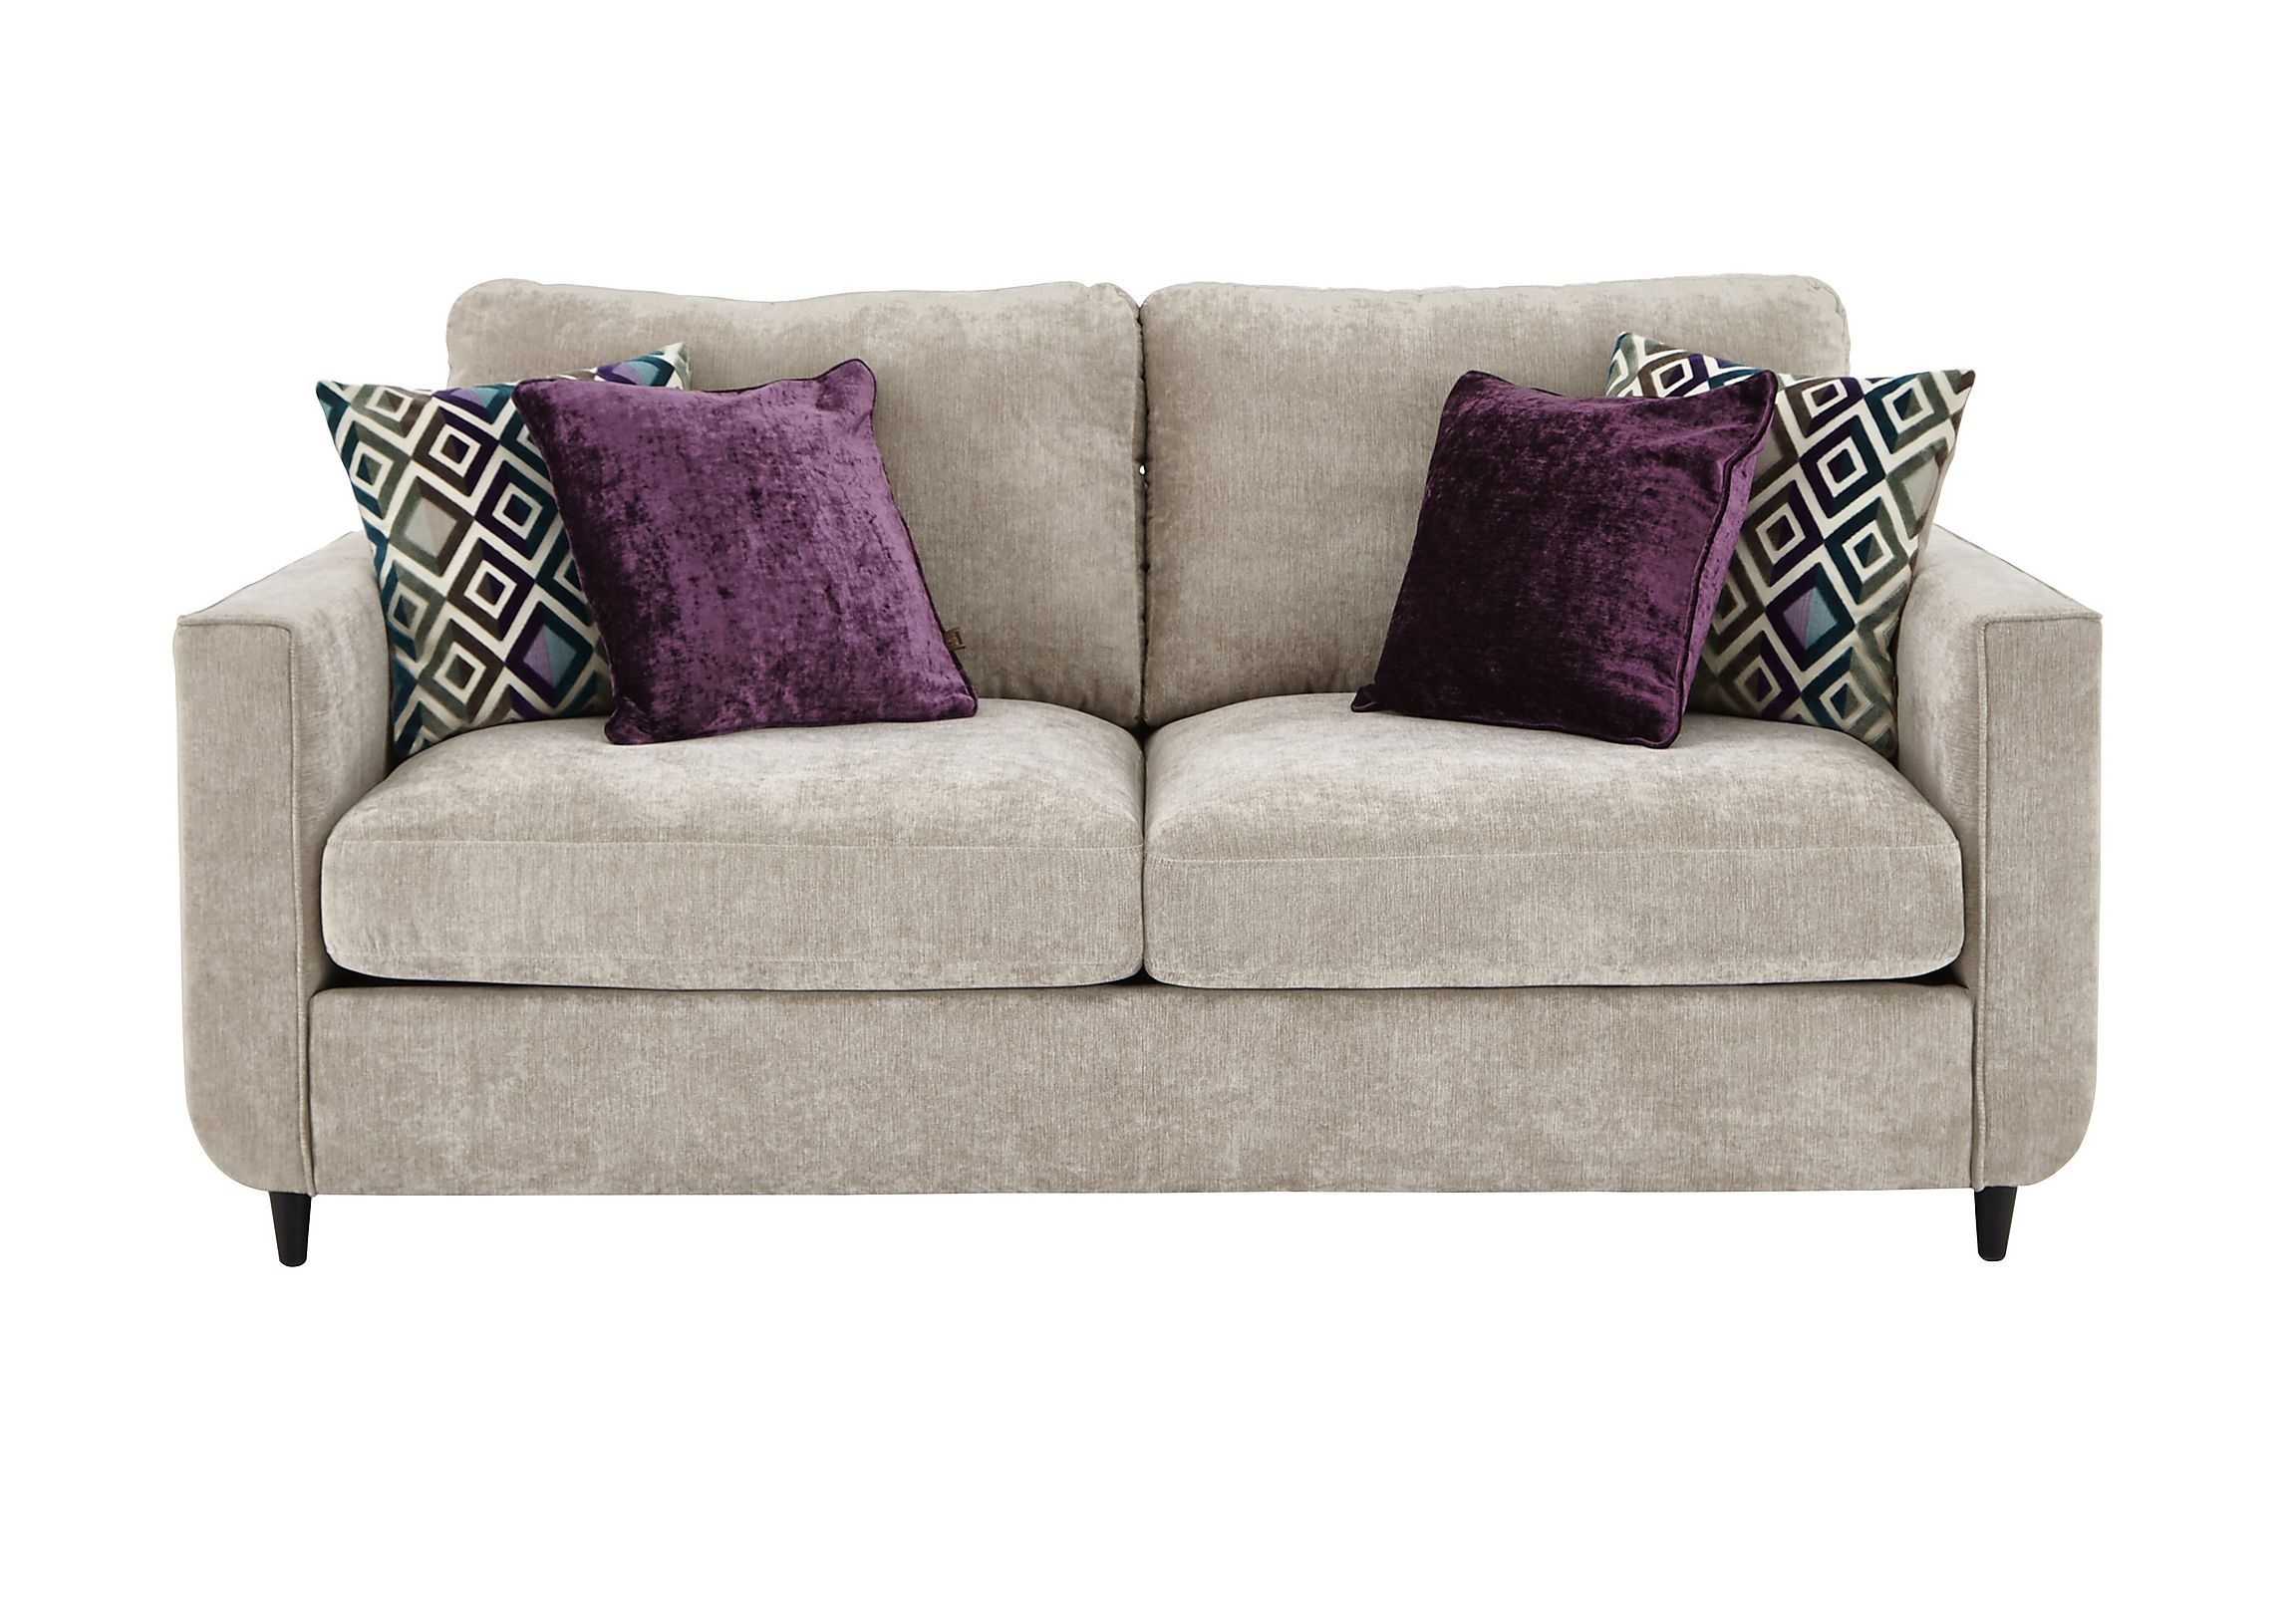 Esprit 3 Seater Fabric Sofa Bed Sofa Bed Design Couches Living Room Comfy Fabric Sofa Bed